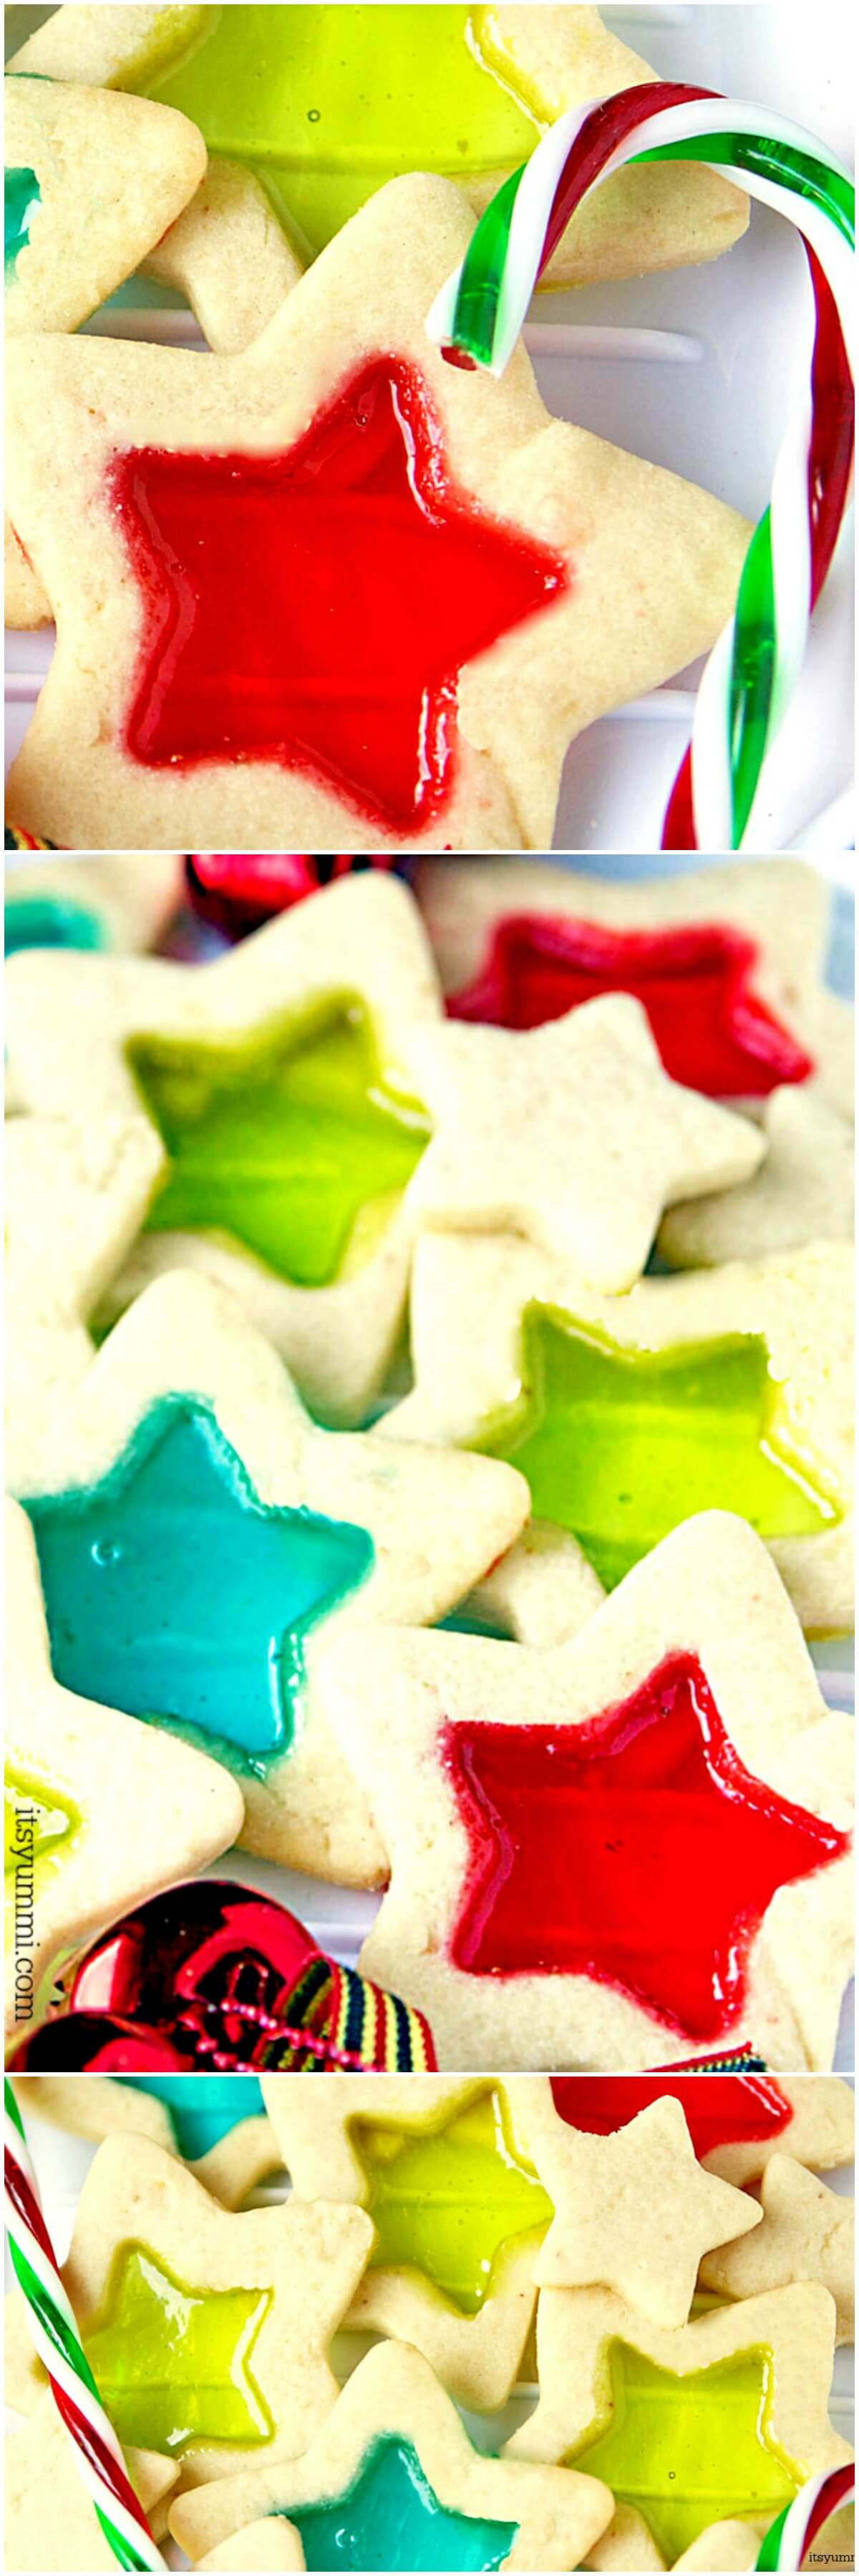 Stained Glass Christmas Cookies are beautiful, delicious, and easy to make Christmas cookies.  This Christmas cookie recipe starts with soft butter cookie dough, rolled out and cut into holiday shapes, then filled with melted candies to look like stained glass. #christmas #cookies